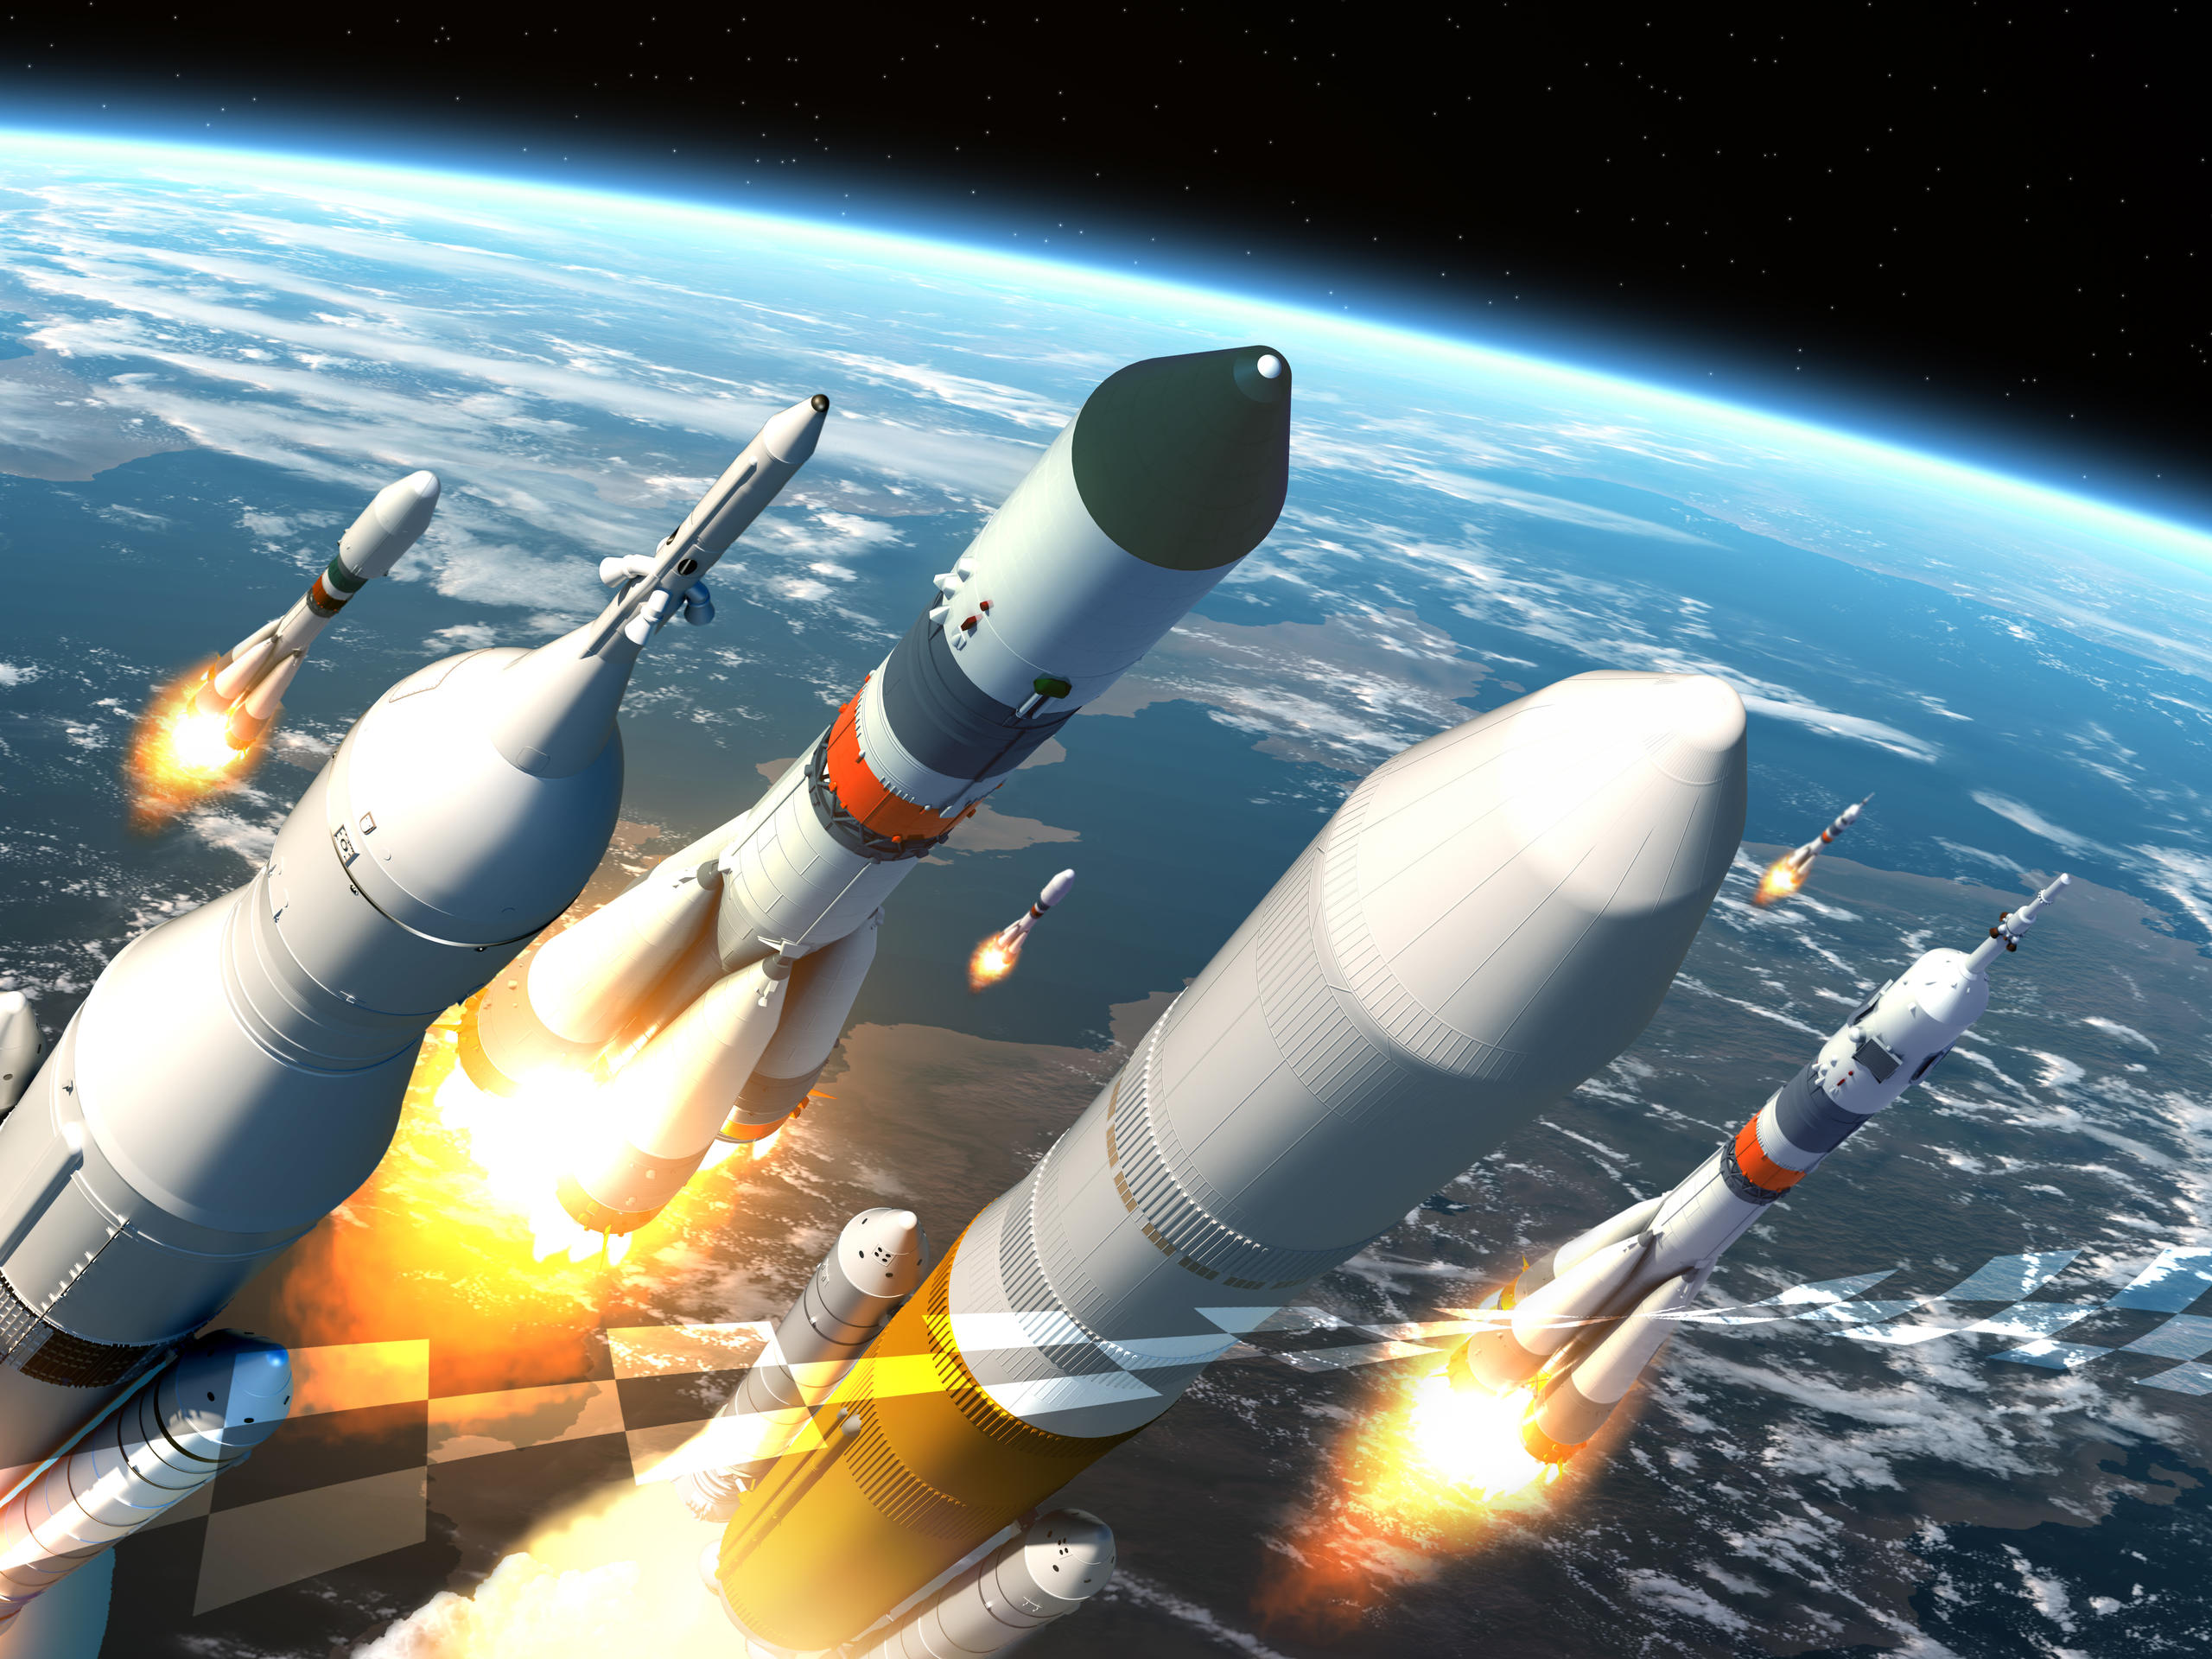 December 2016 - Launchers: The Race to Orbit Tomorrow's Spacecraft | Via Satellite